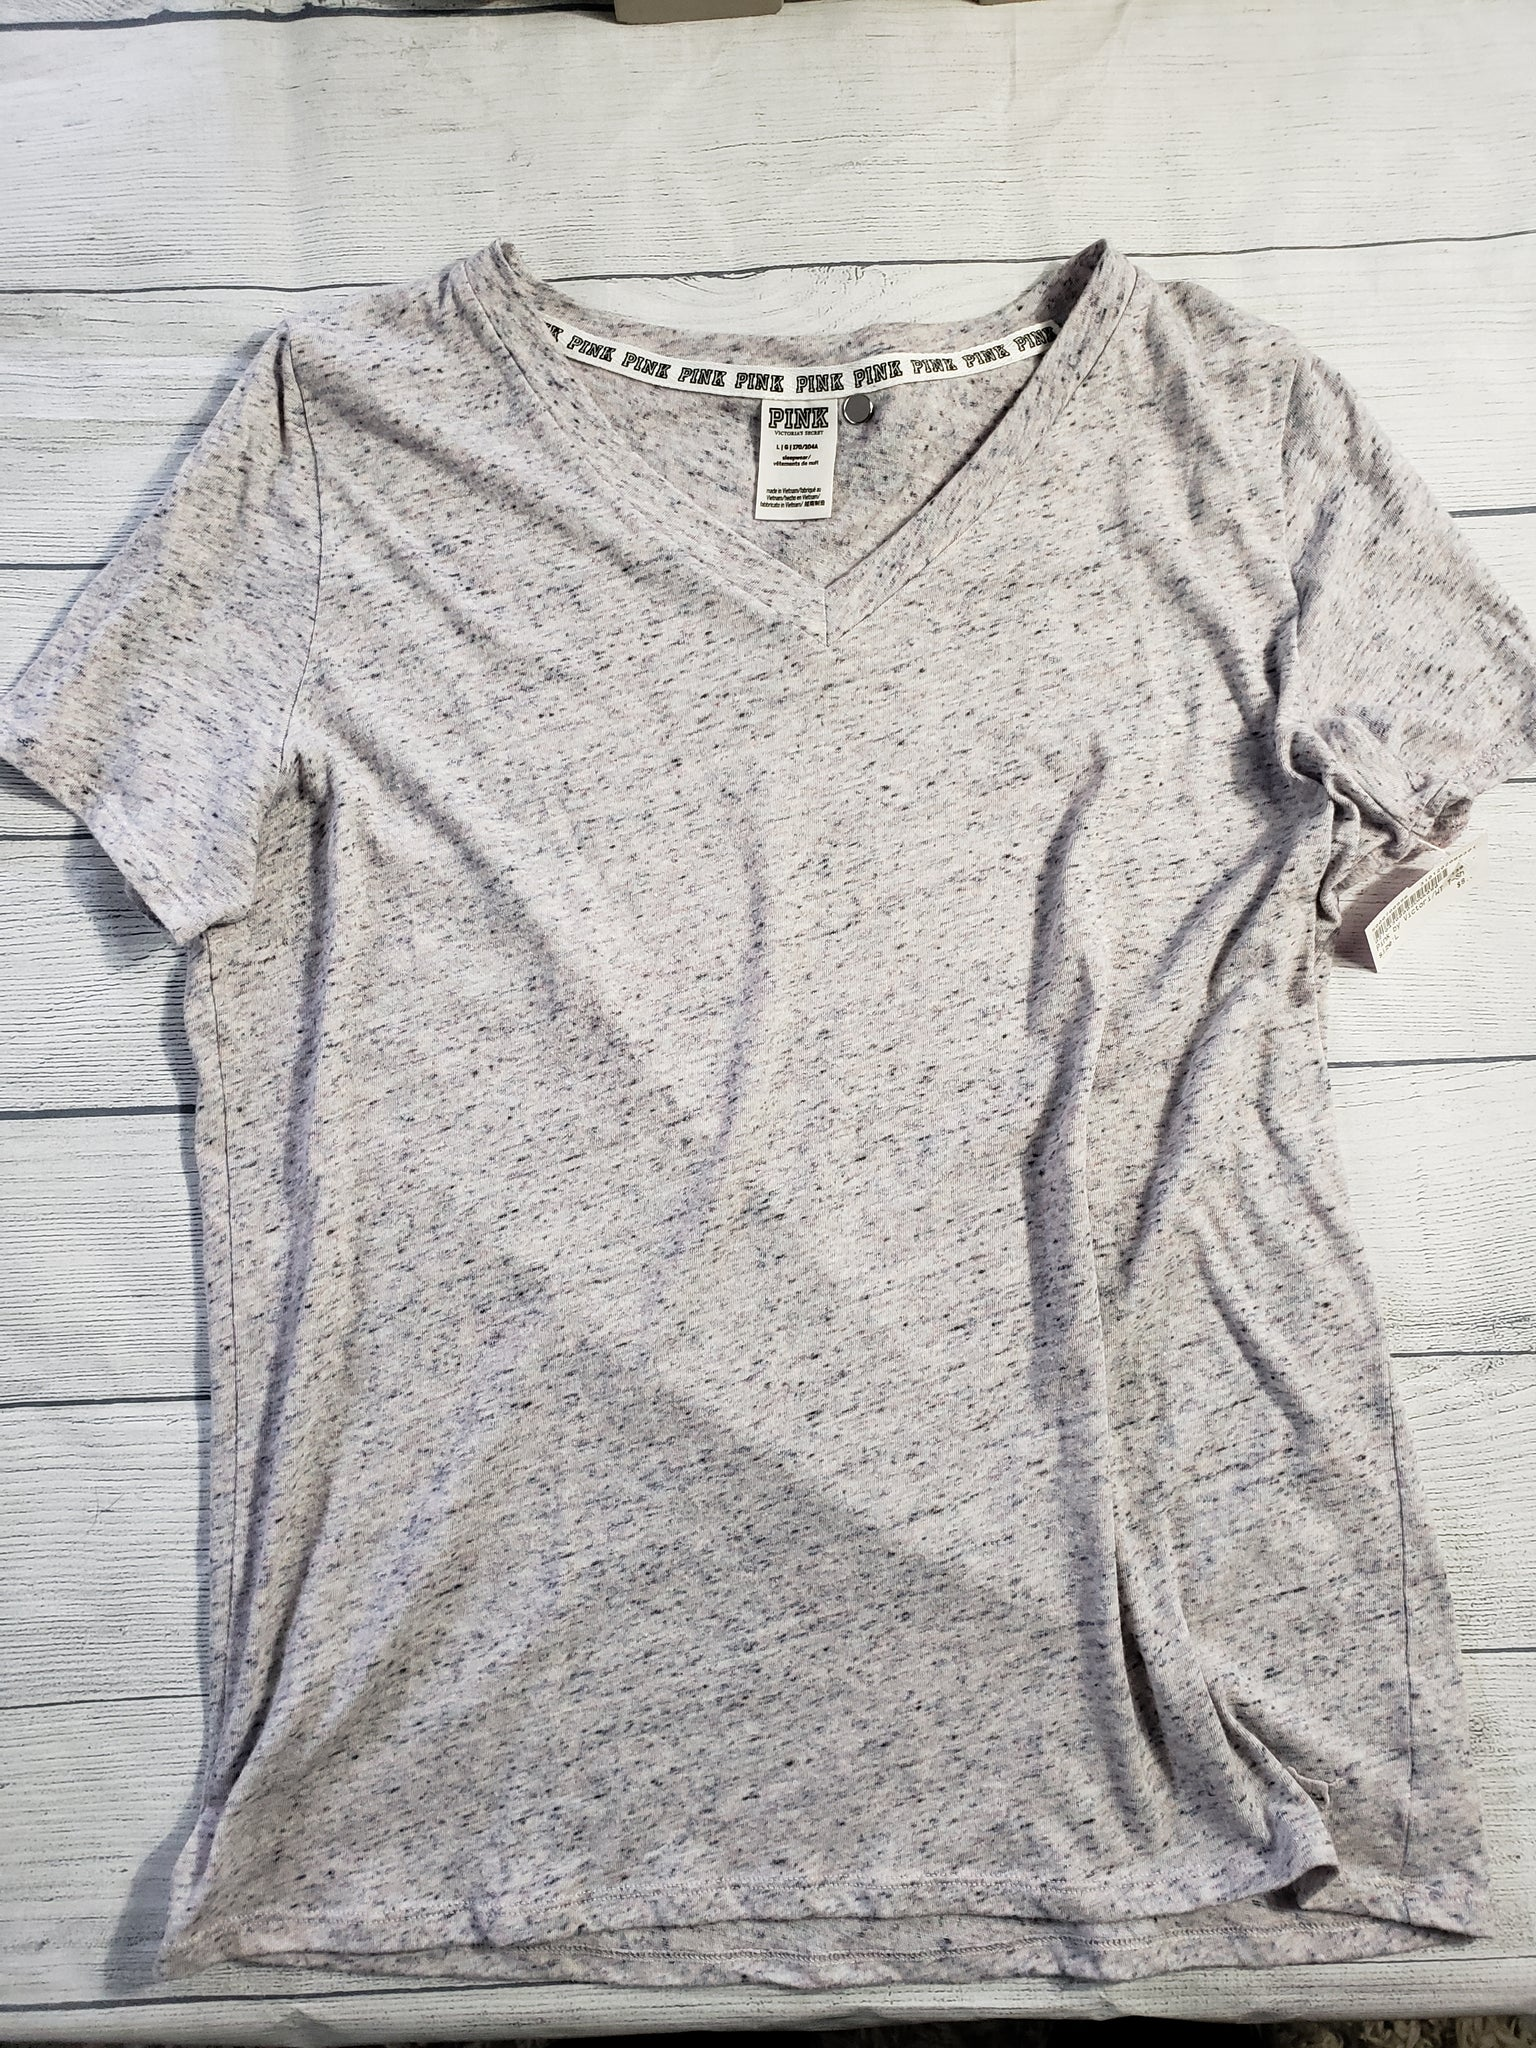 Pink By Victoria's Secret Womens T-Shirt Large - Plato's Closet